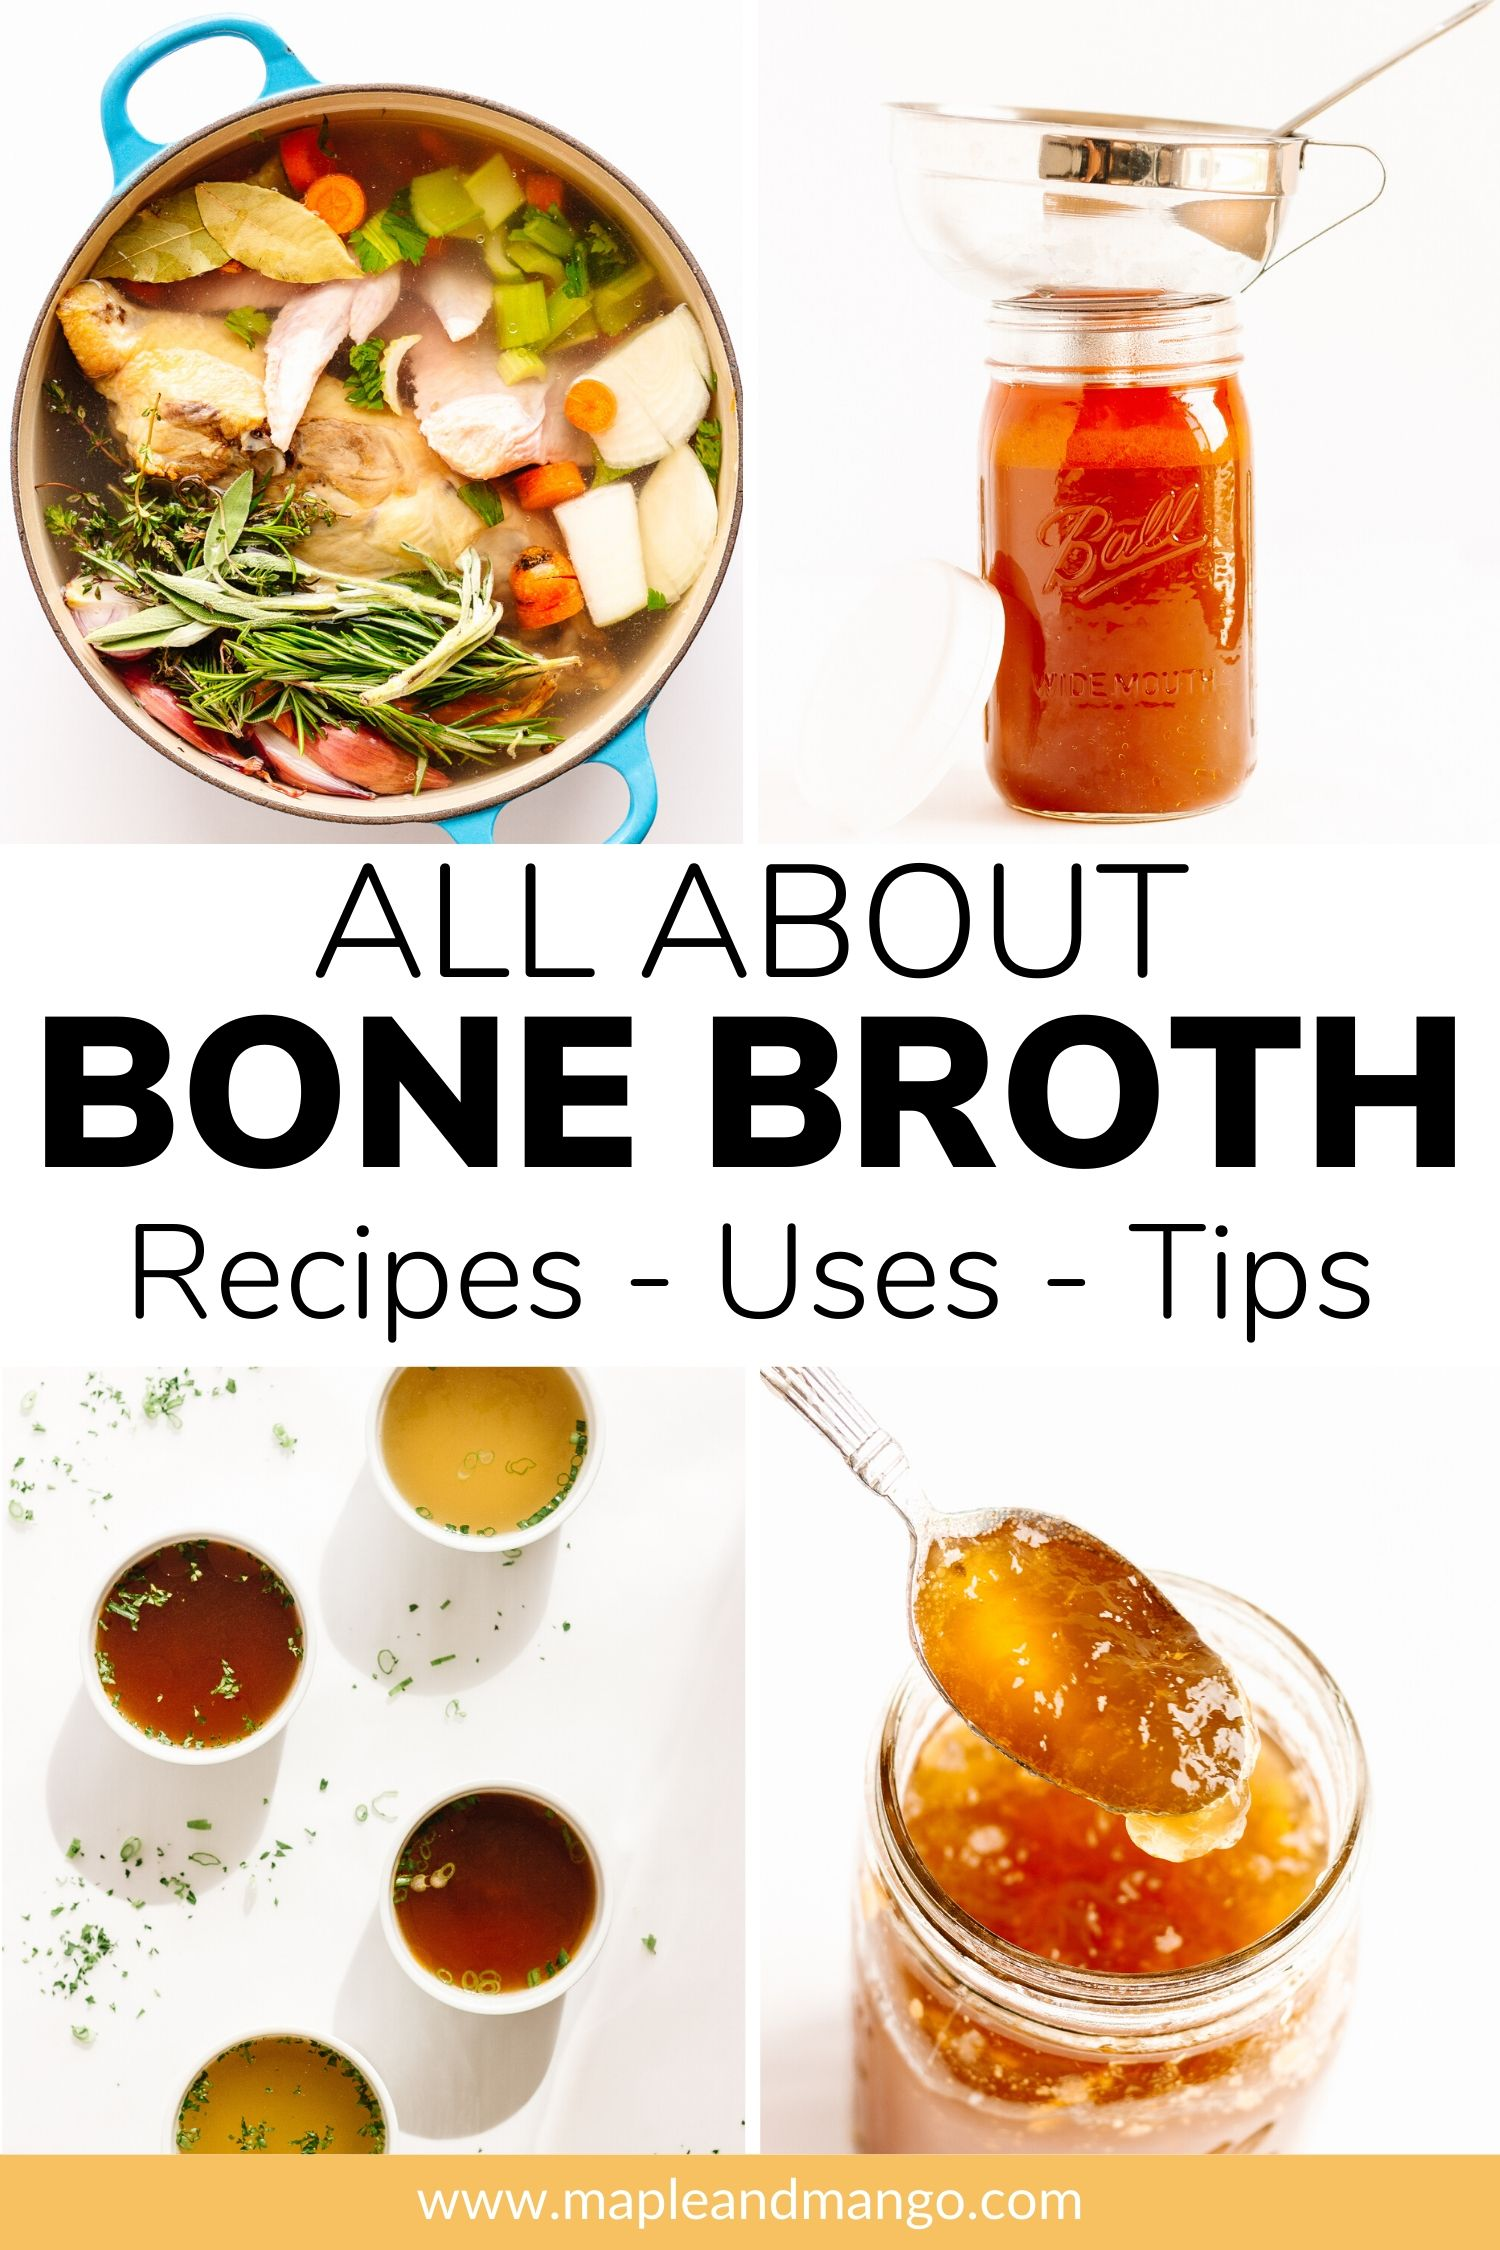 Collage of bone broth photos with text overlay for Pinterest.